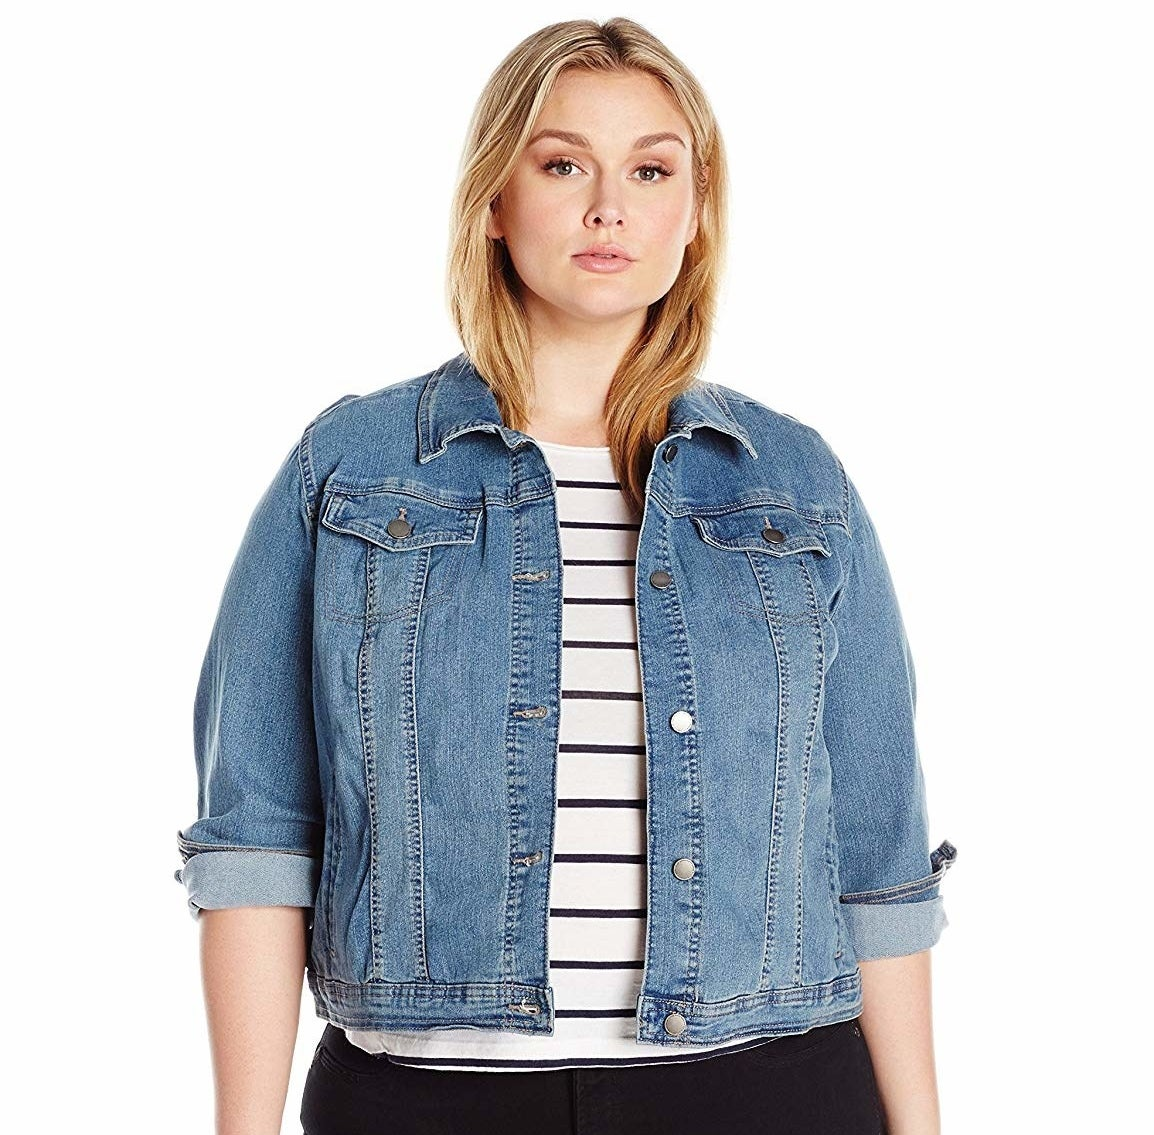 """This jacket features the two front flap pockets, but also includes two inside pockets for valuables. Promising review: """"This jacket is awesome. I ordered it as an everyday jean jacket and something I could wear over dresses on vacation. It's lightweight compared to the heavier Levi denim jackets (which I also own), which makes this PERFECT for warmer weather, and it has a bit of stretch. I probably should have sized down for a more form-fitting fit, but ordered my normal size and it still looked great. I would 100% recommend this budget jacket to any plus-size gal looking for something cute. Perfect staple for any wardrobe! Love, Love, LOVE!"""" —EvieMGet it from Amazon for $35.99 (available in sizes 1X–3X and two washes)."""